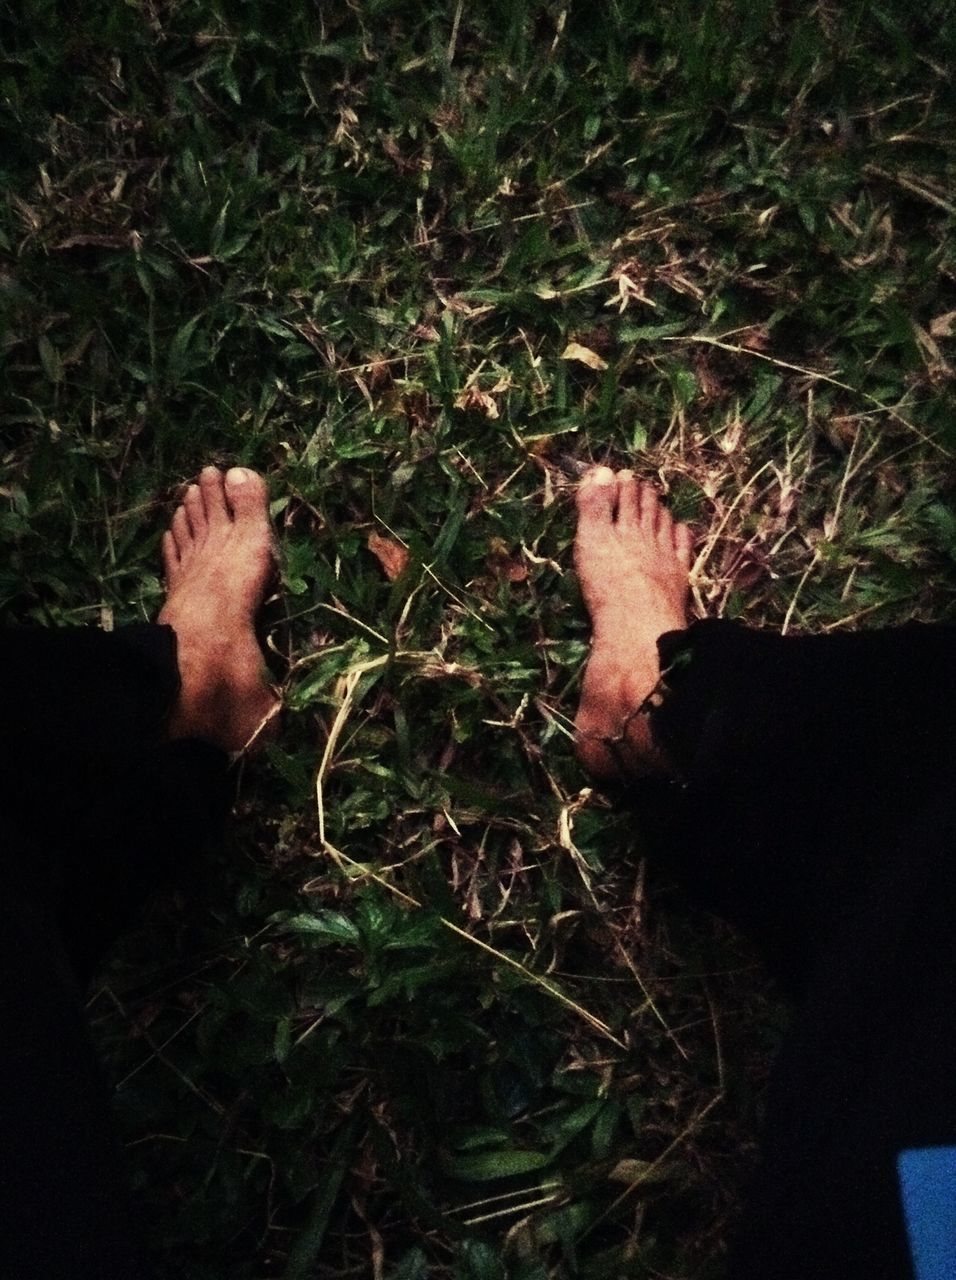 grass, barefoot, adventure, real people, men, human body part, one person, low section, friendship, nature, outdoors, day, people